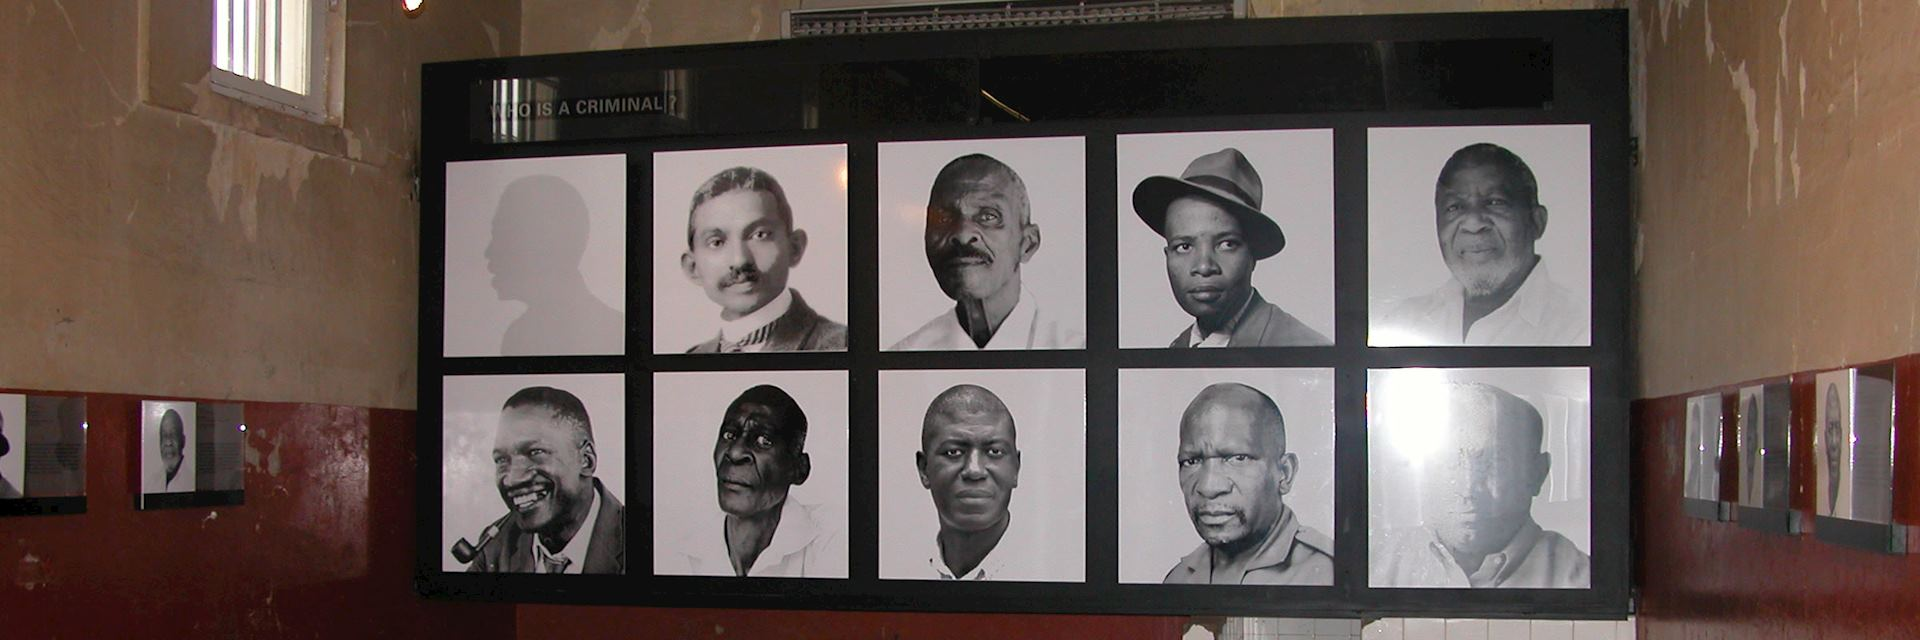 Constitution Hill Prison Museum, Johannesburg, South Africa